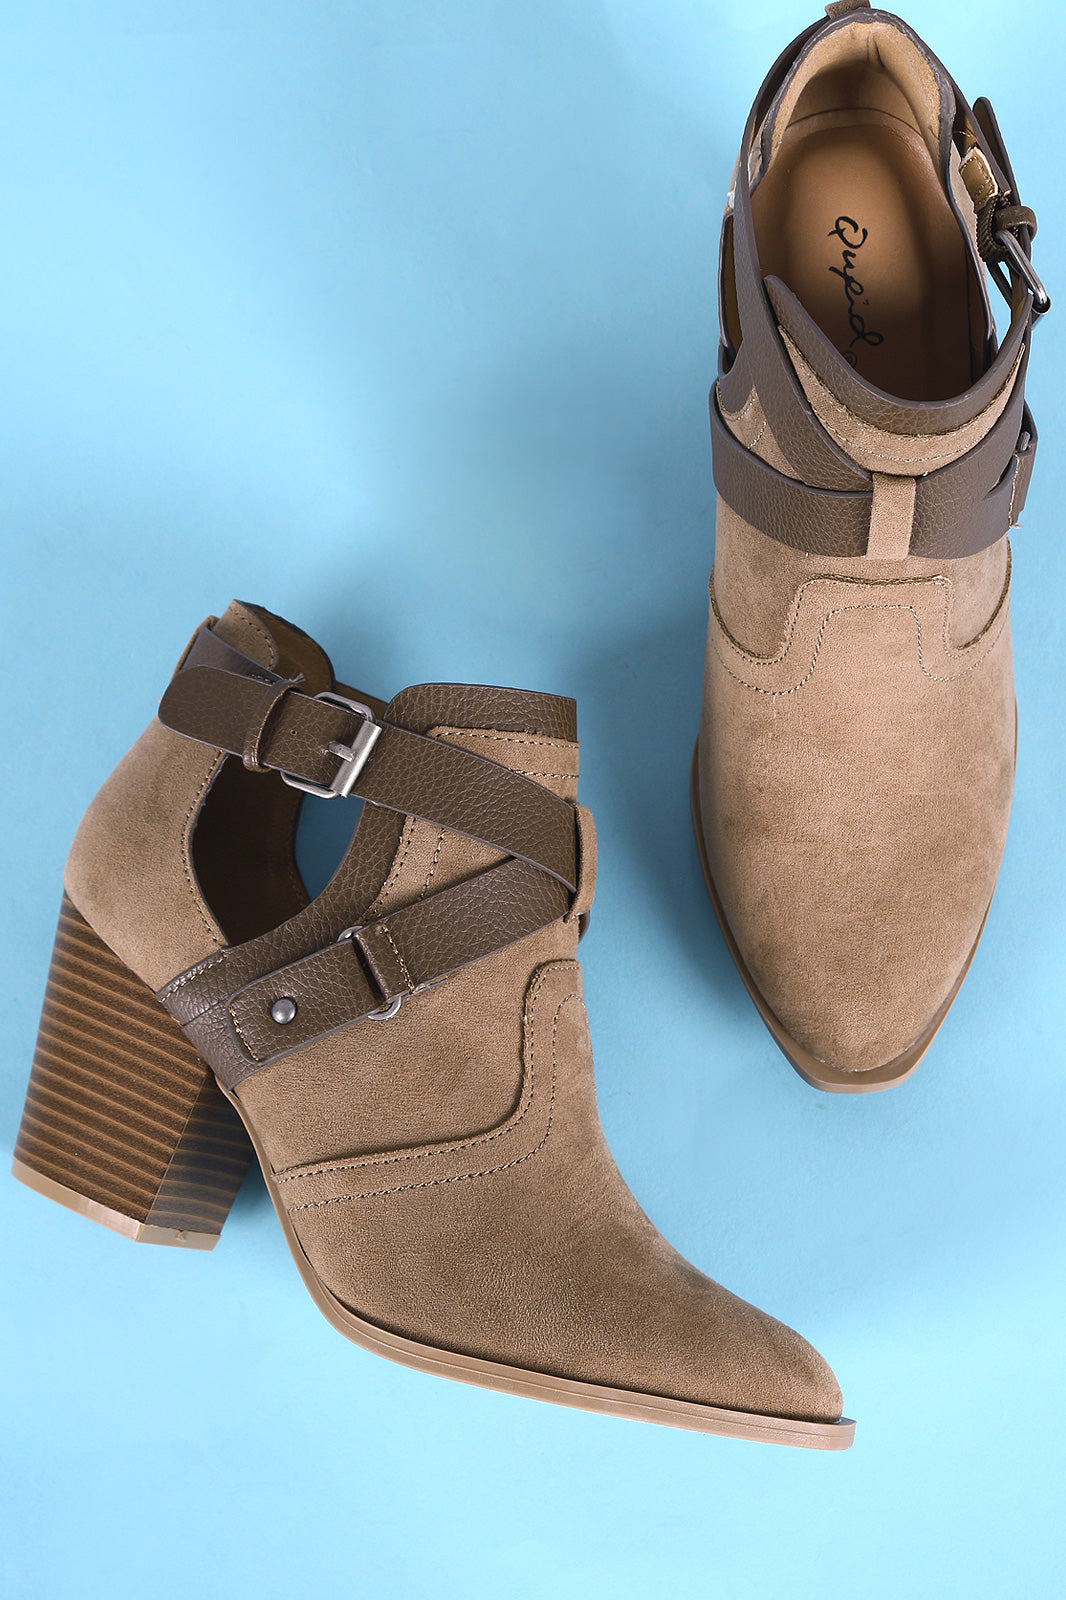 Qupid Crisscross Buckle Strap Side Cutout Stacked Chunky Heeled Booties